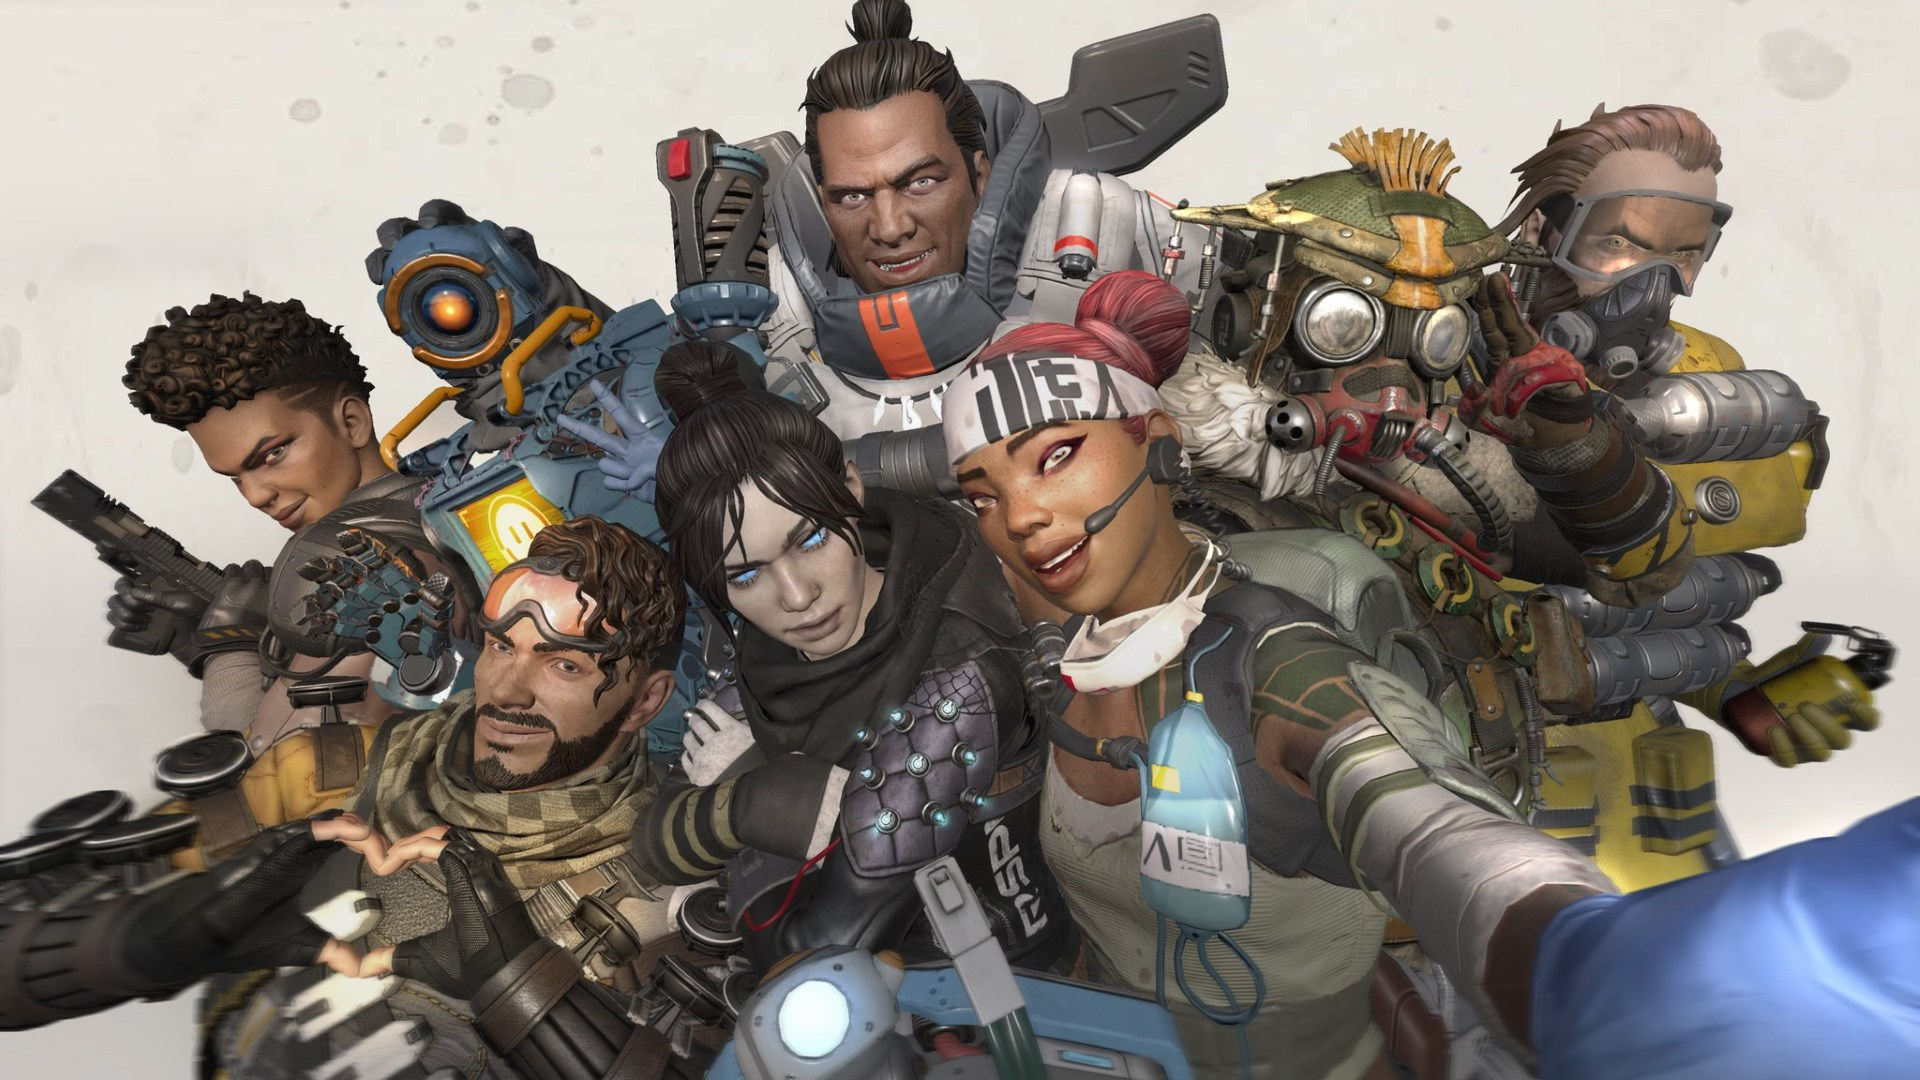 apex legends ilustracny obrazok